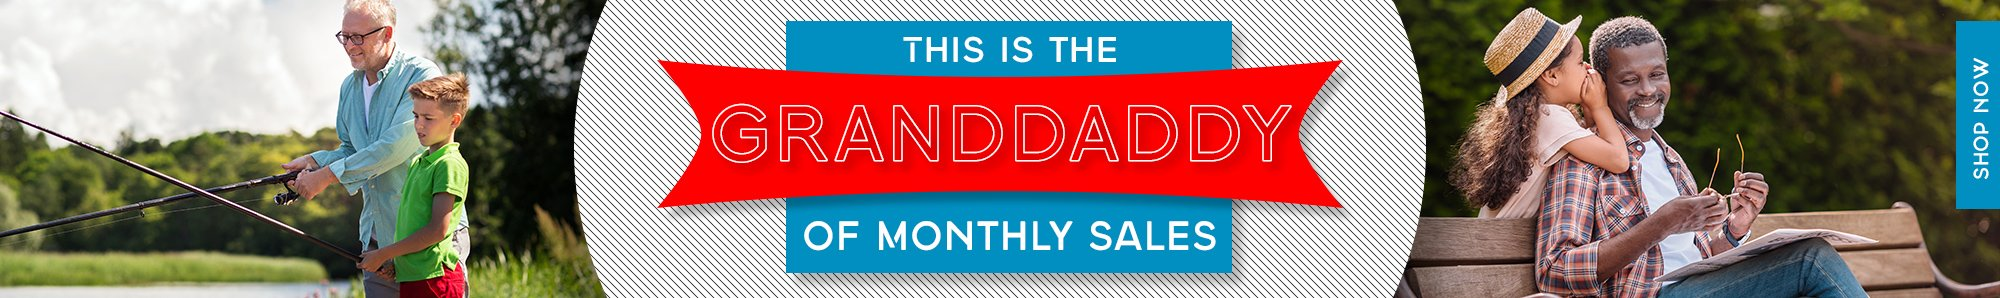 This is the granddaddy of all monthly sales!